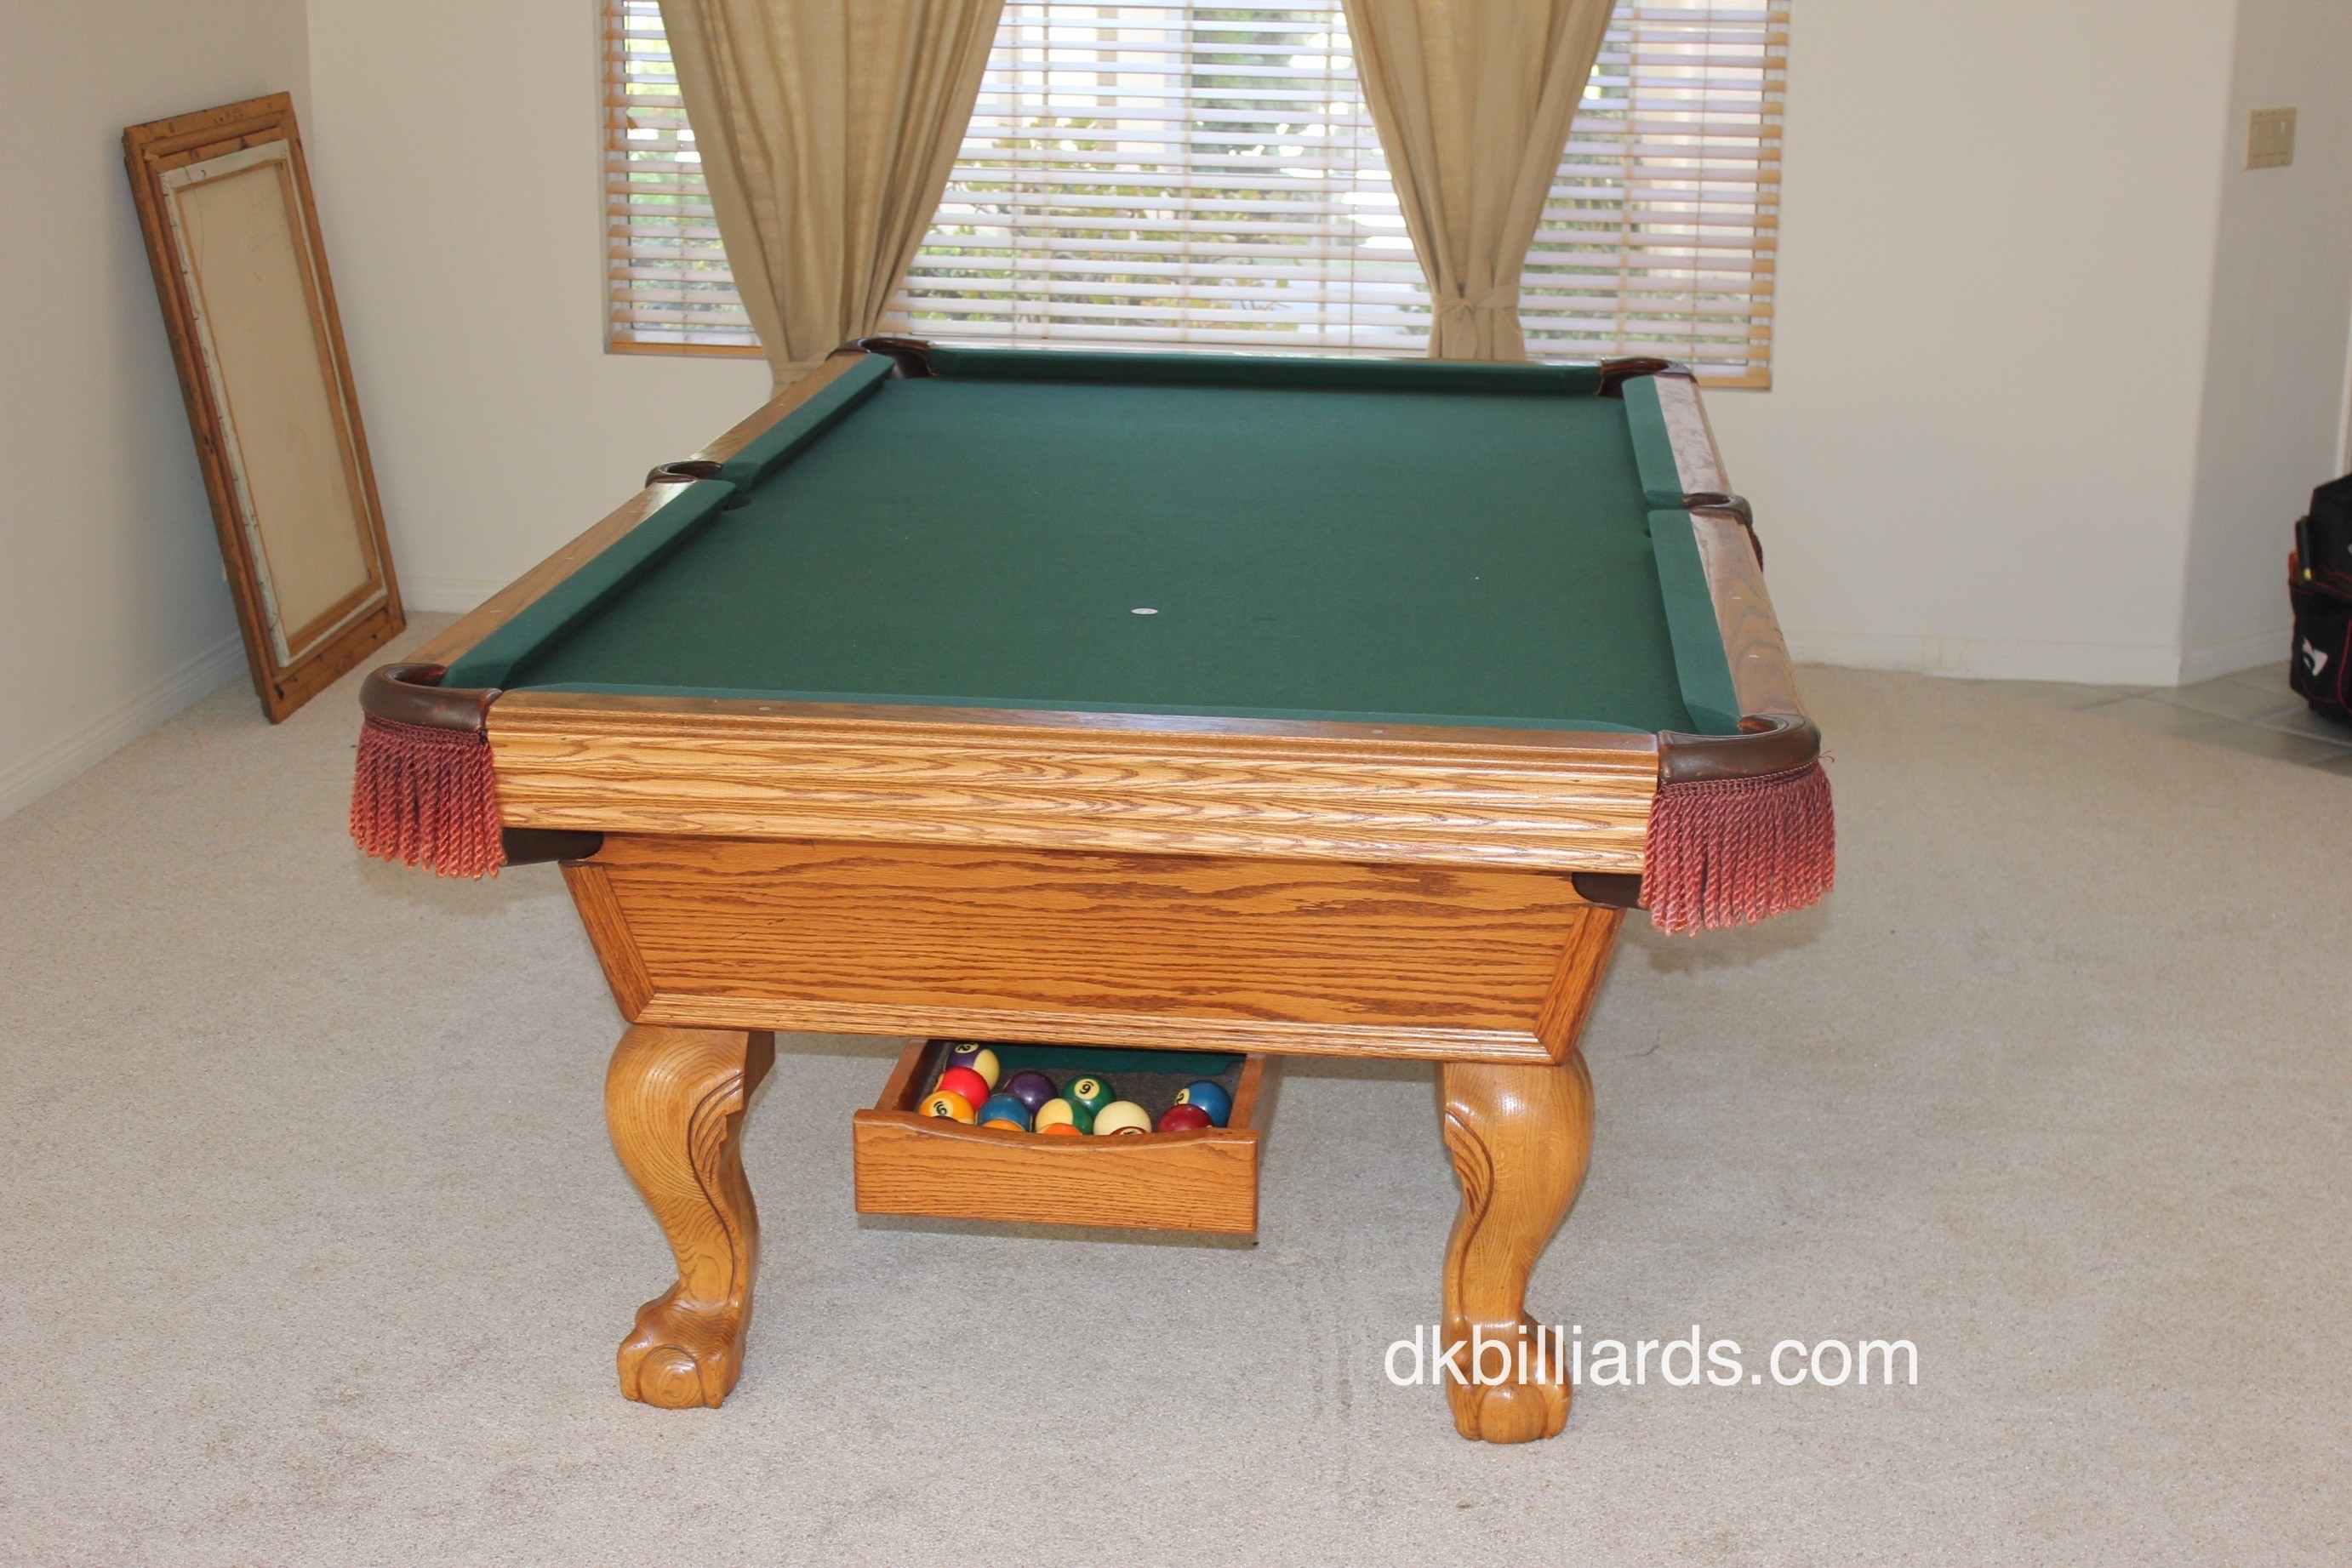 We Recently Came Across This Unusual 8u2032 Olhausen Ball Return Pool Table.  The 20+ Year Old Pool Table Had Been Stored For A Year And Found New Owners  In ...